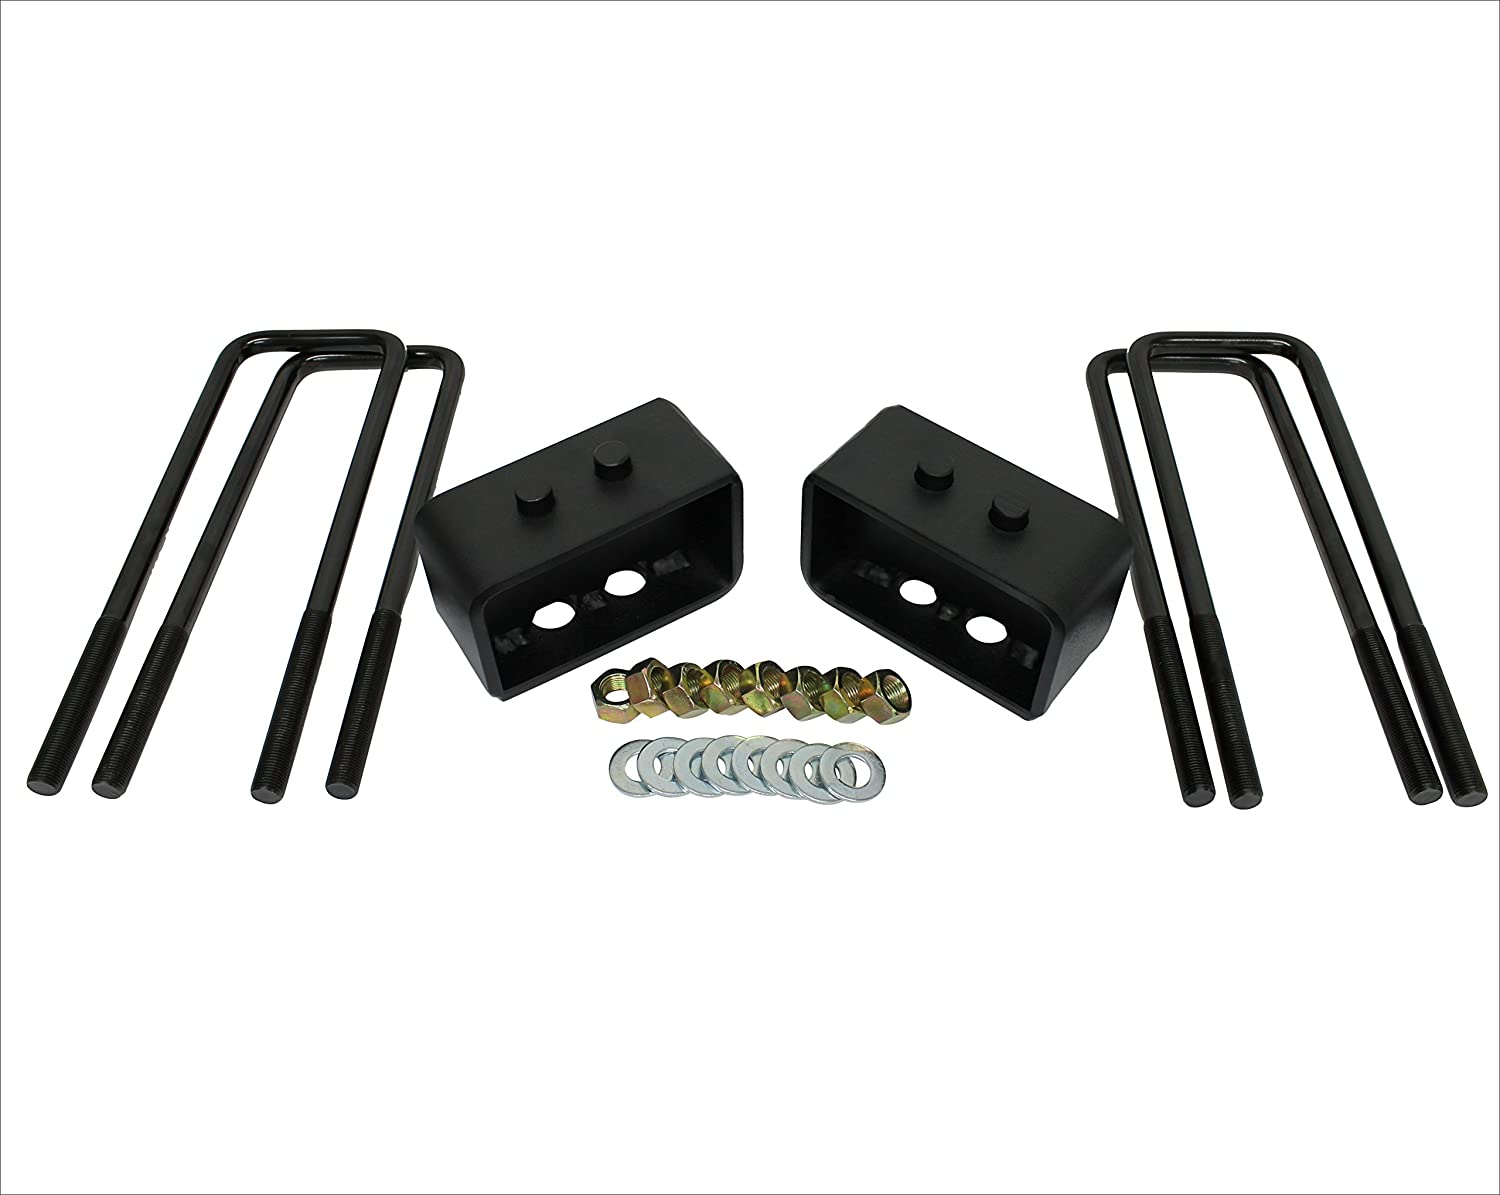 KSP 3 Rear Leveling Lift Block Kits with Extra Long Square Leaf Spring Axle U Bolts for 2004-2017 FORD F150 2WD//4WD